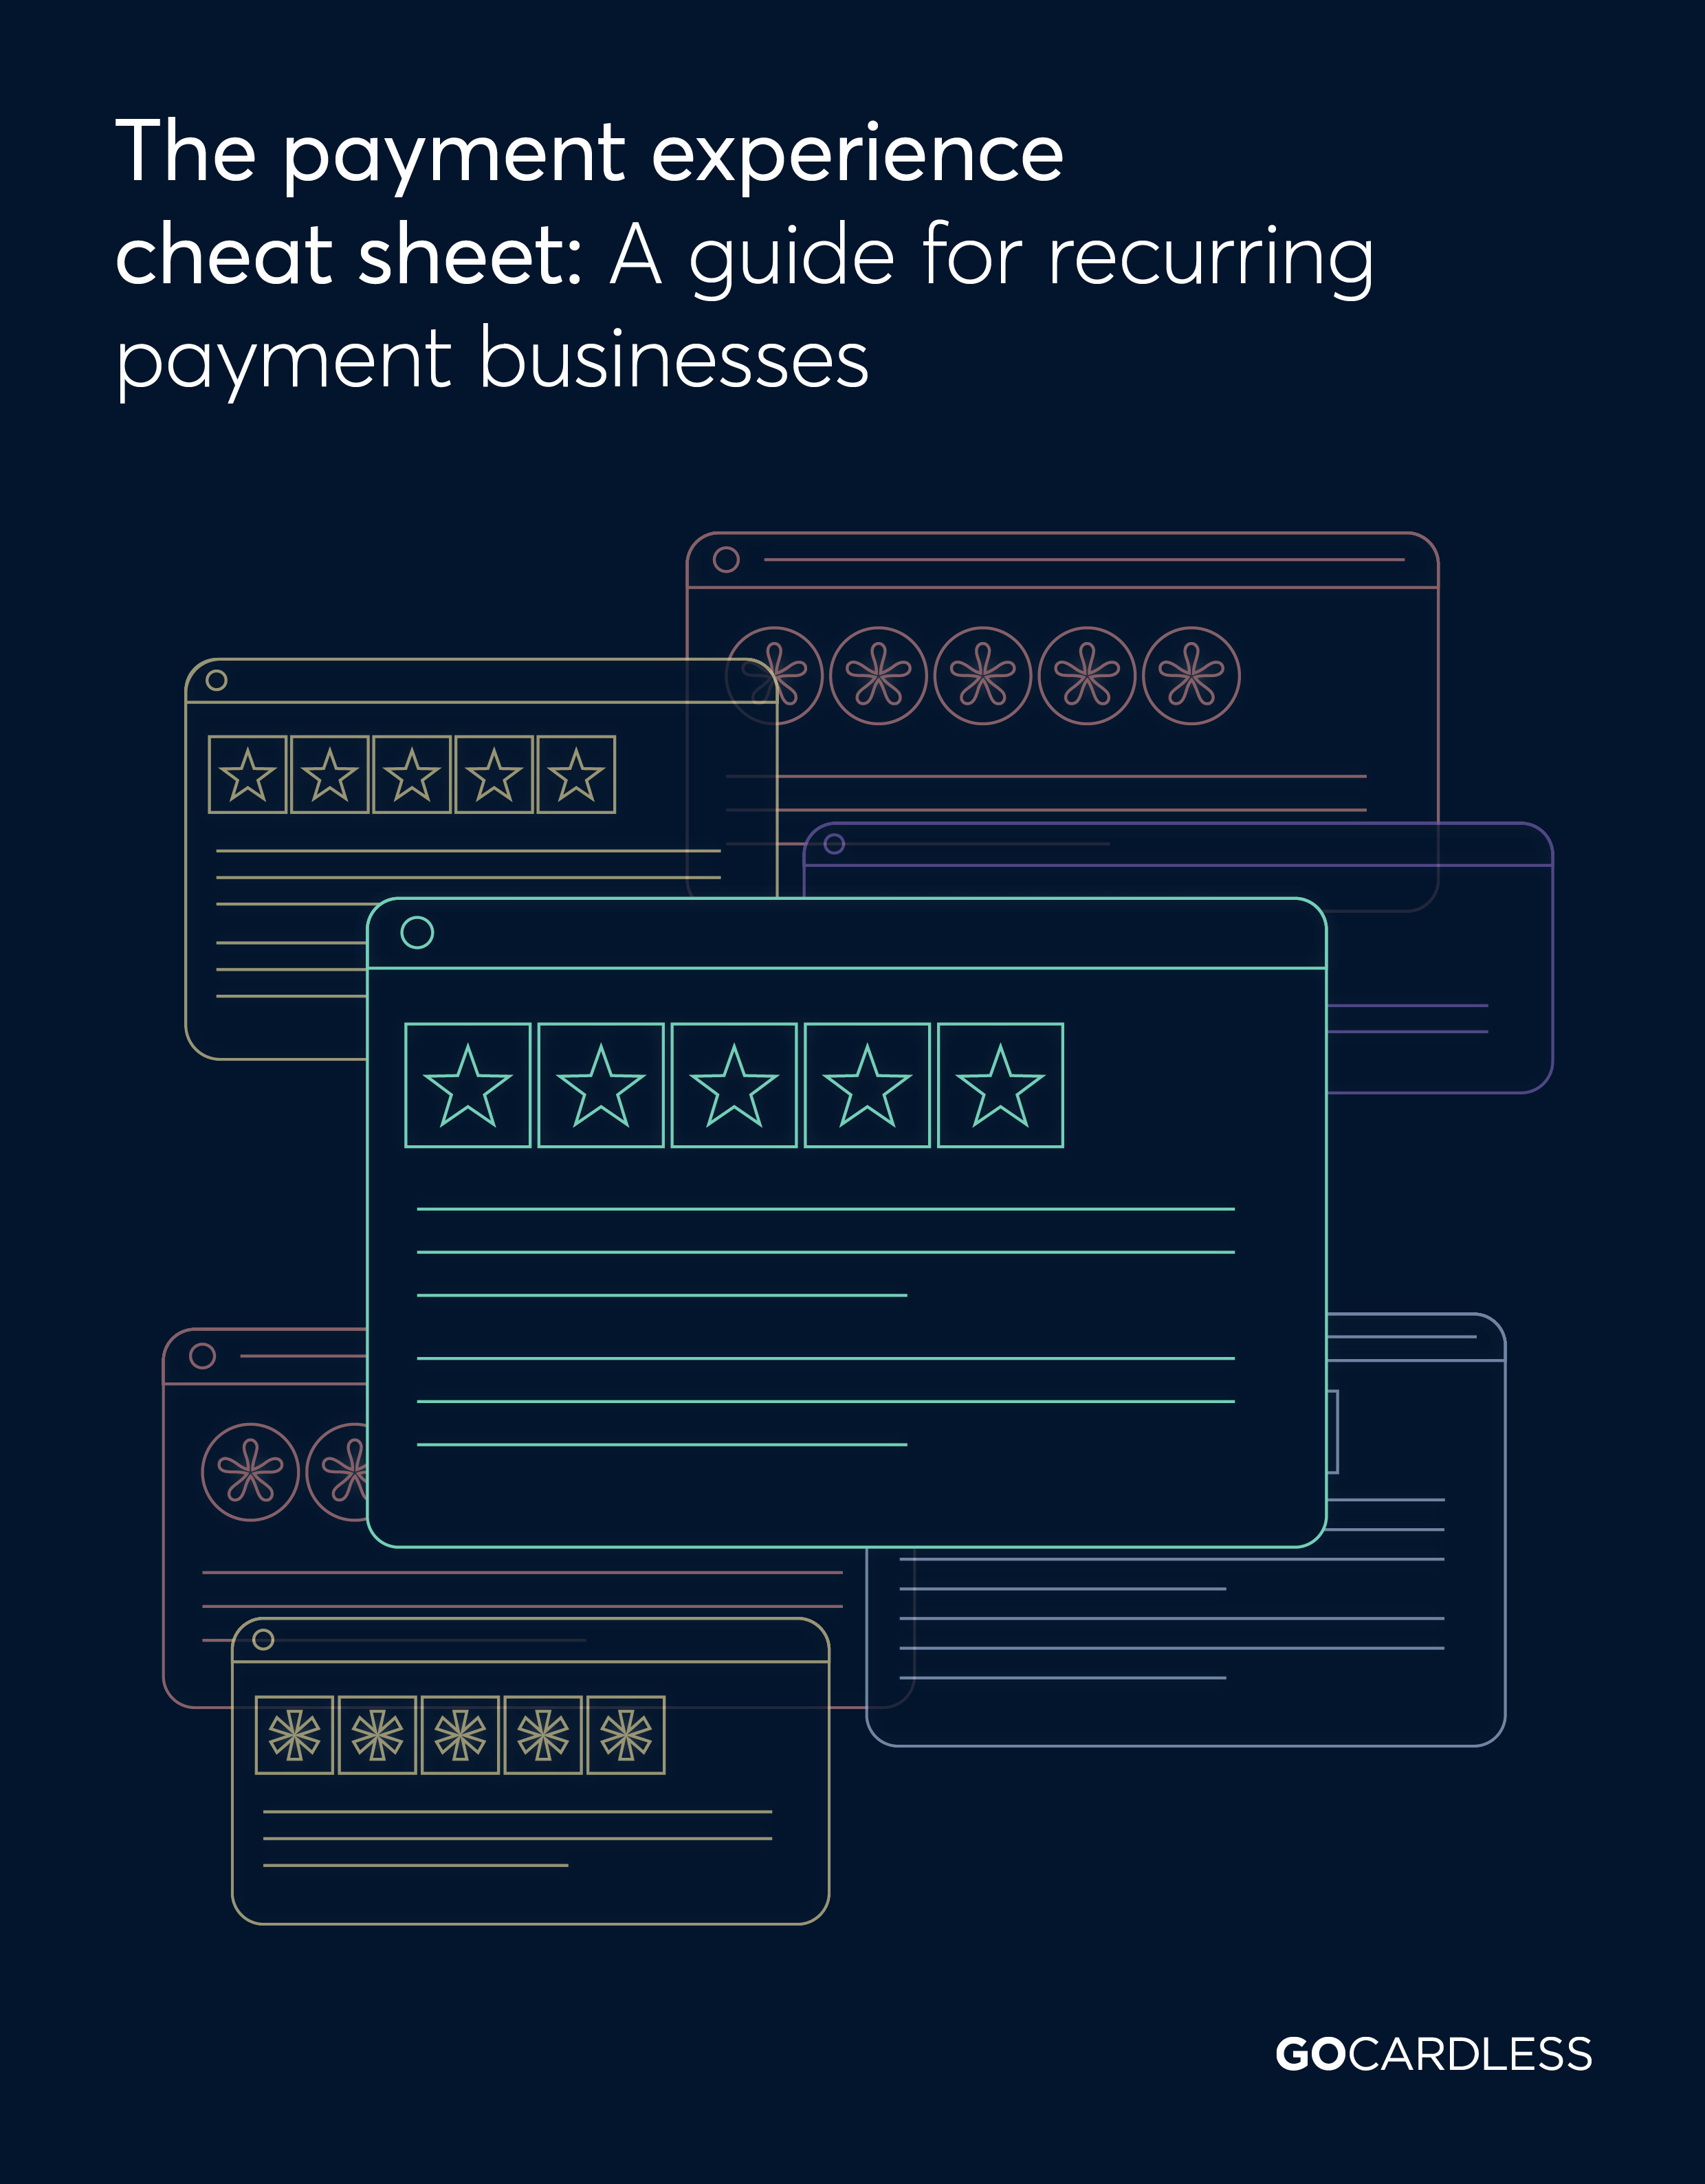 Payment experience cheat sheet